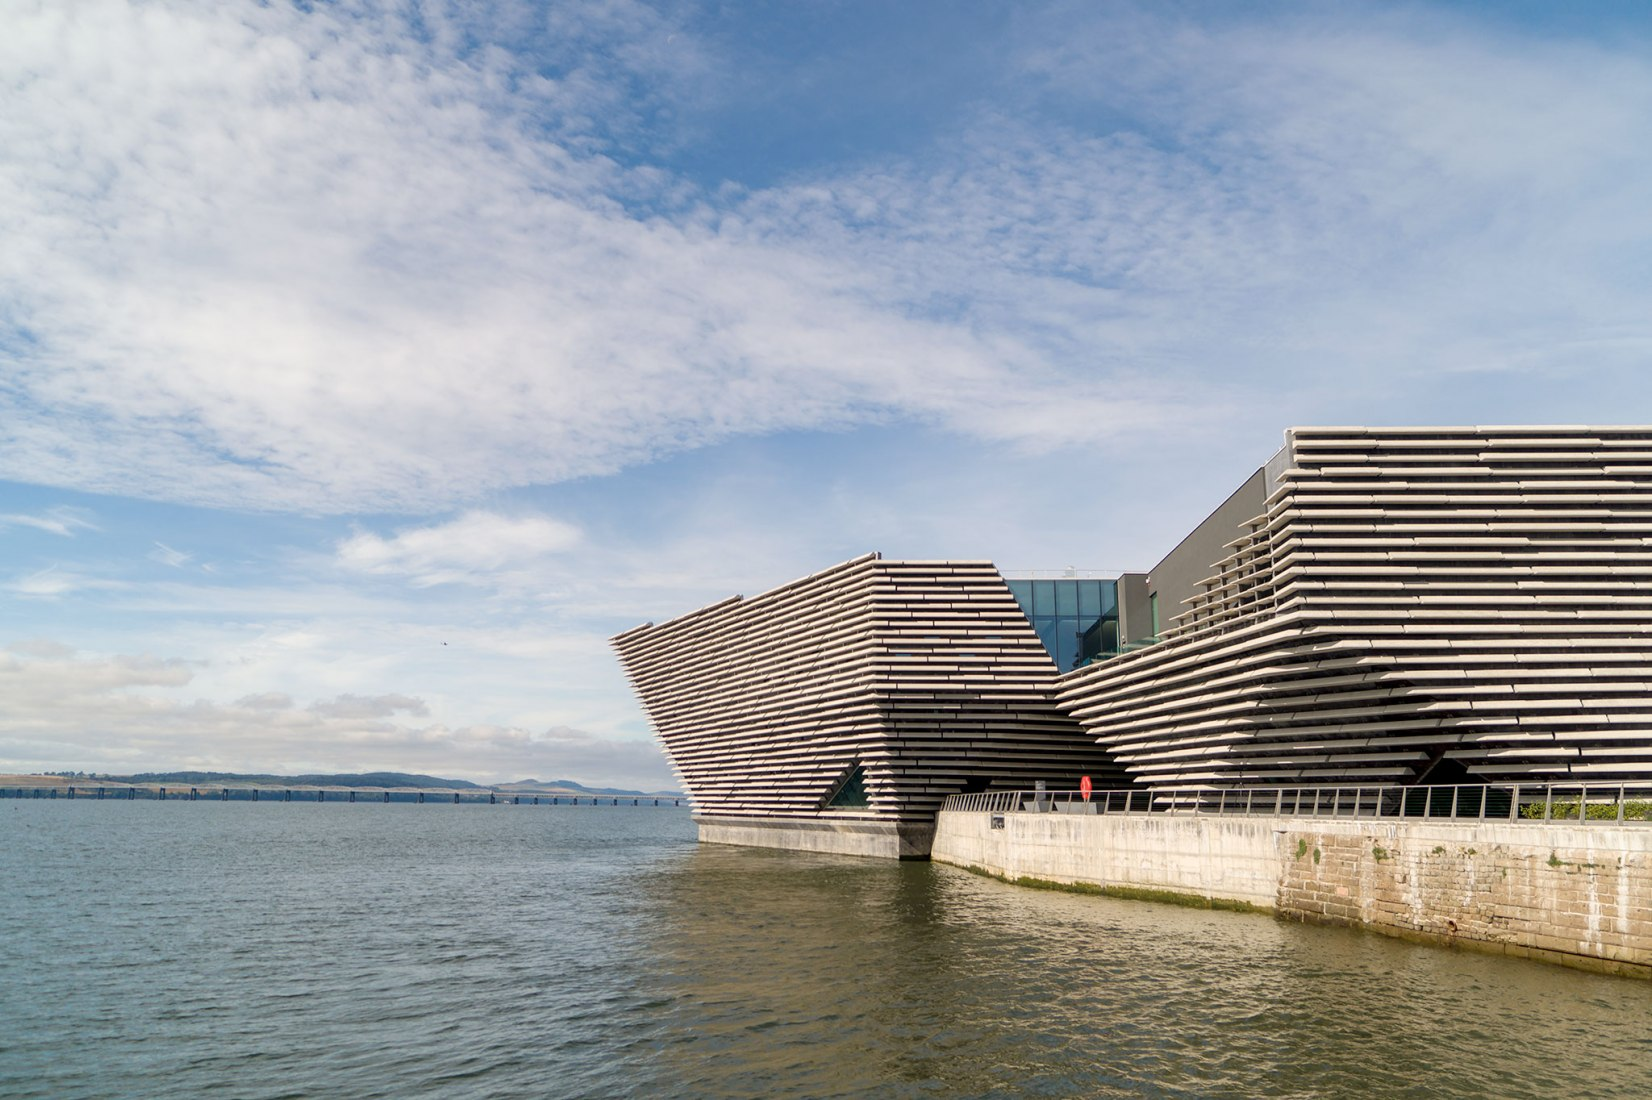 V&A Dundee Museum by Kengo Kuma. Photograph by Rapid Visual Media.